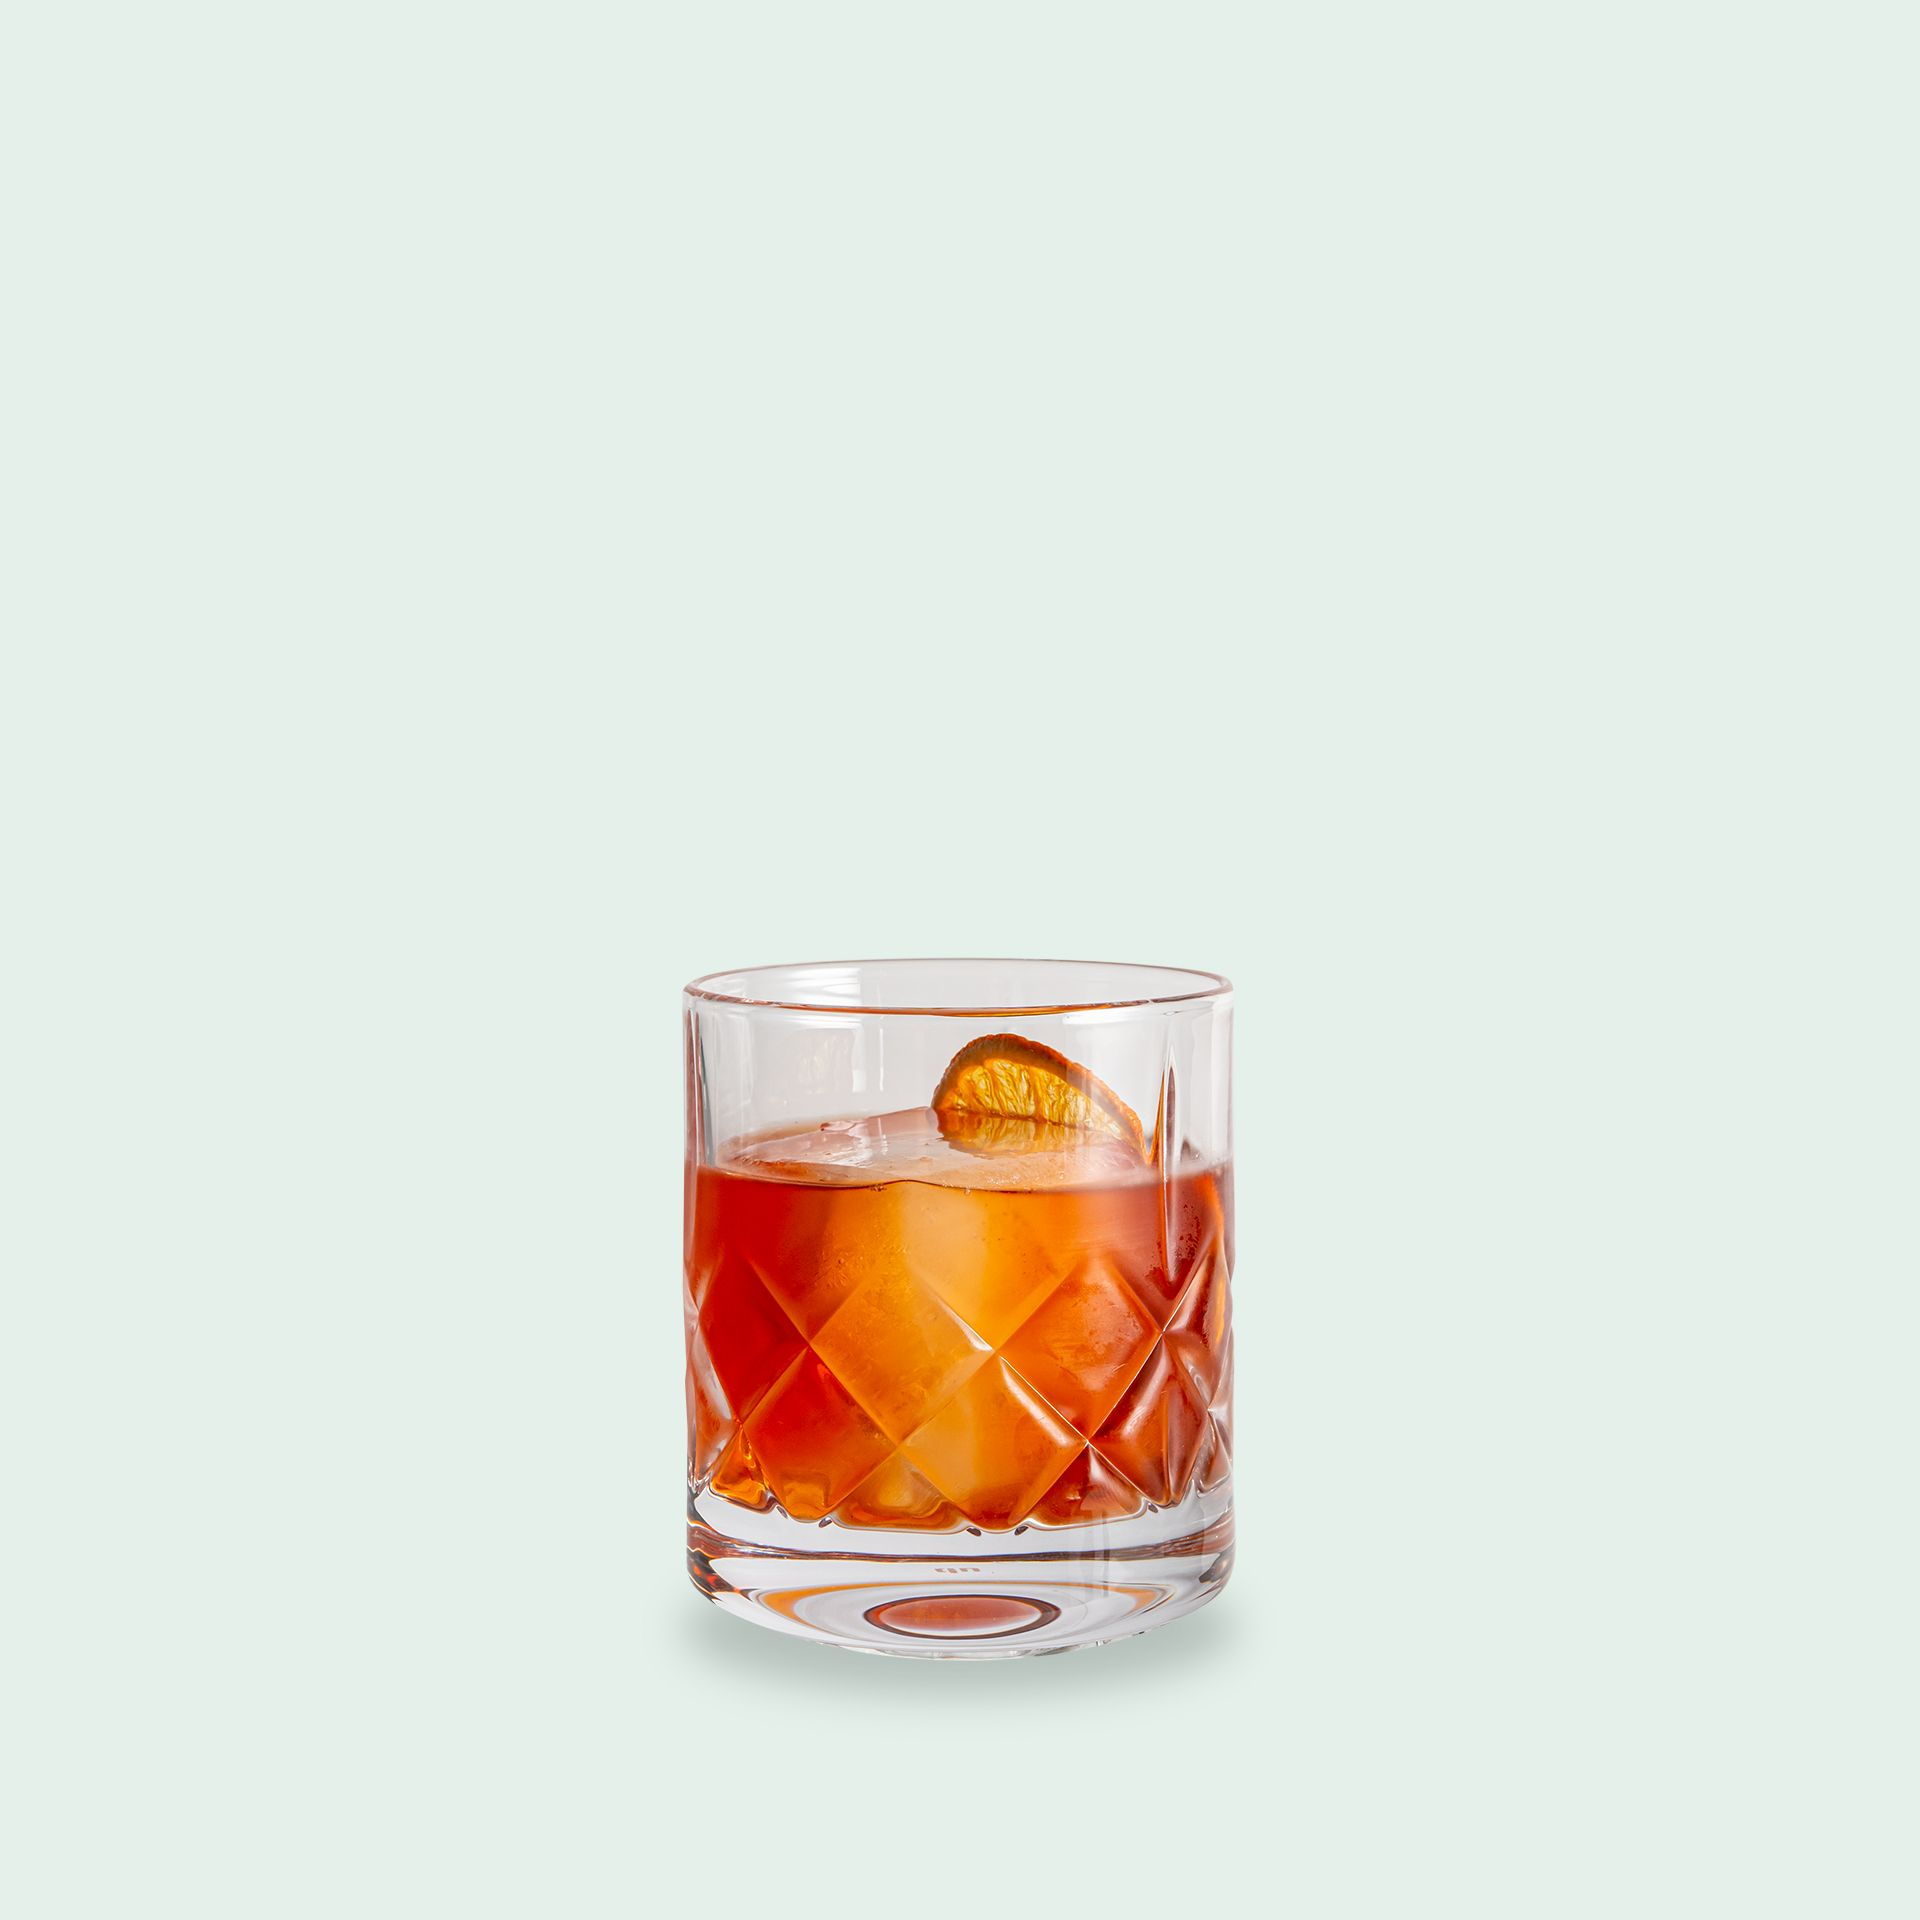 Stagger Lee Beer Old Fashioned: Cocktail aus dem Whisky Tasting Set